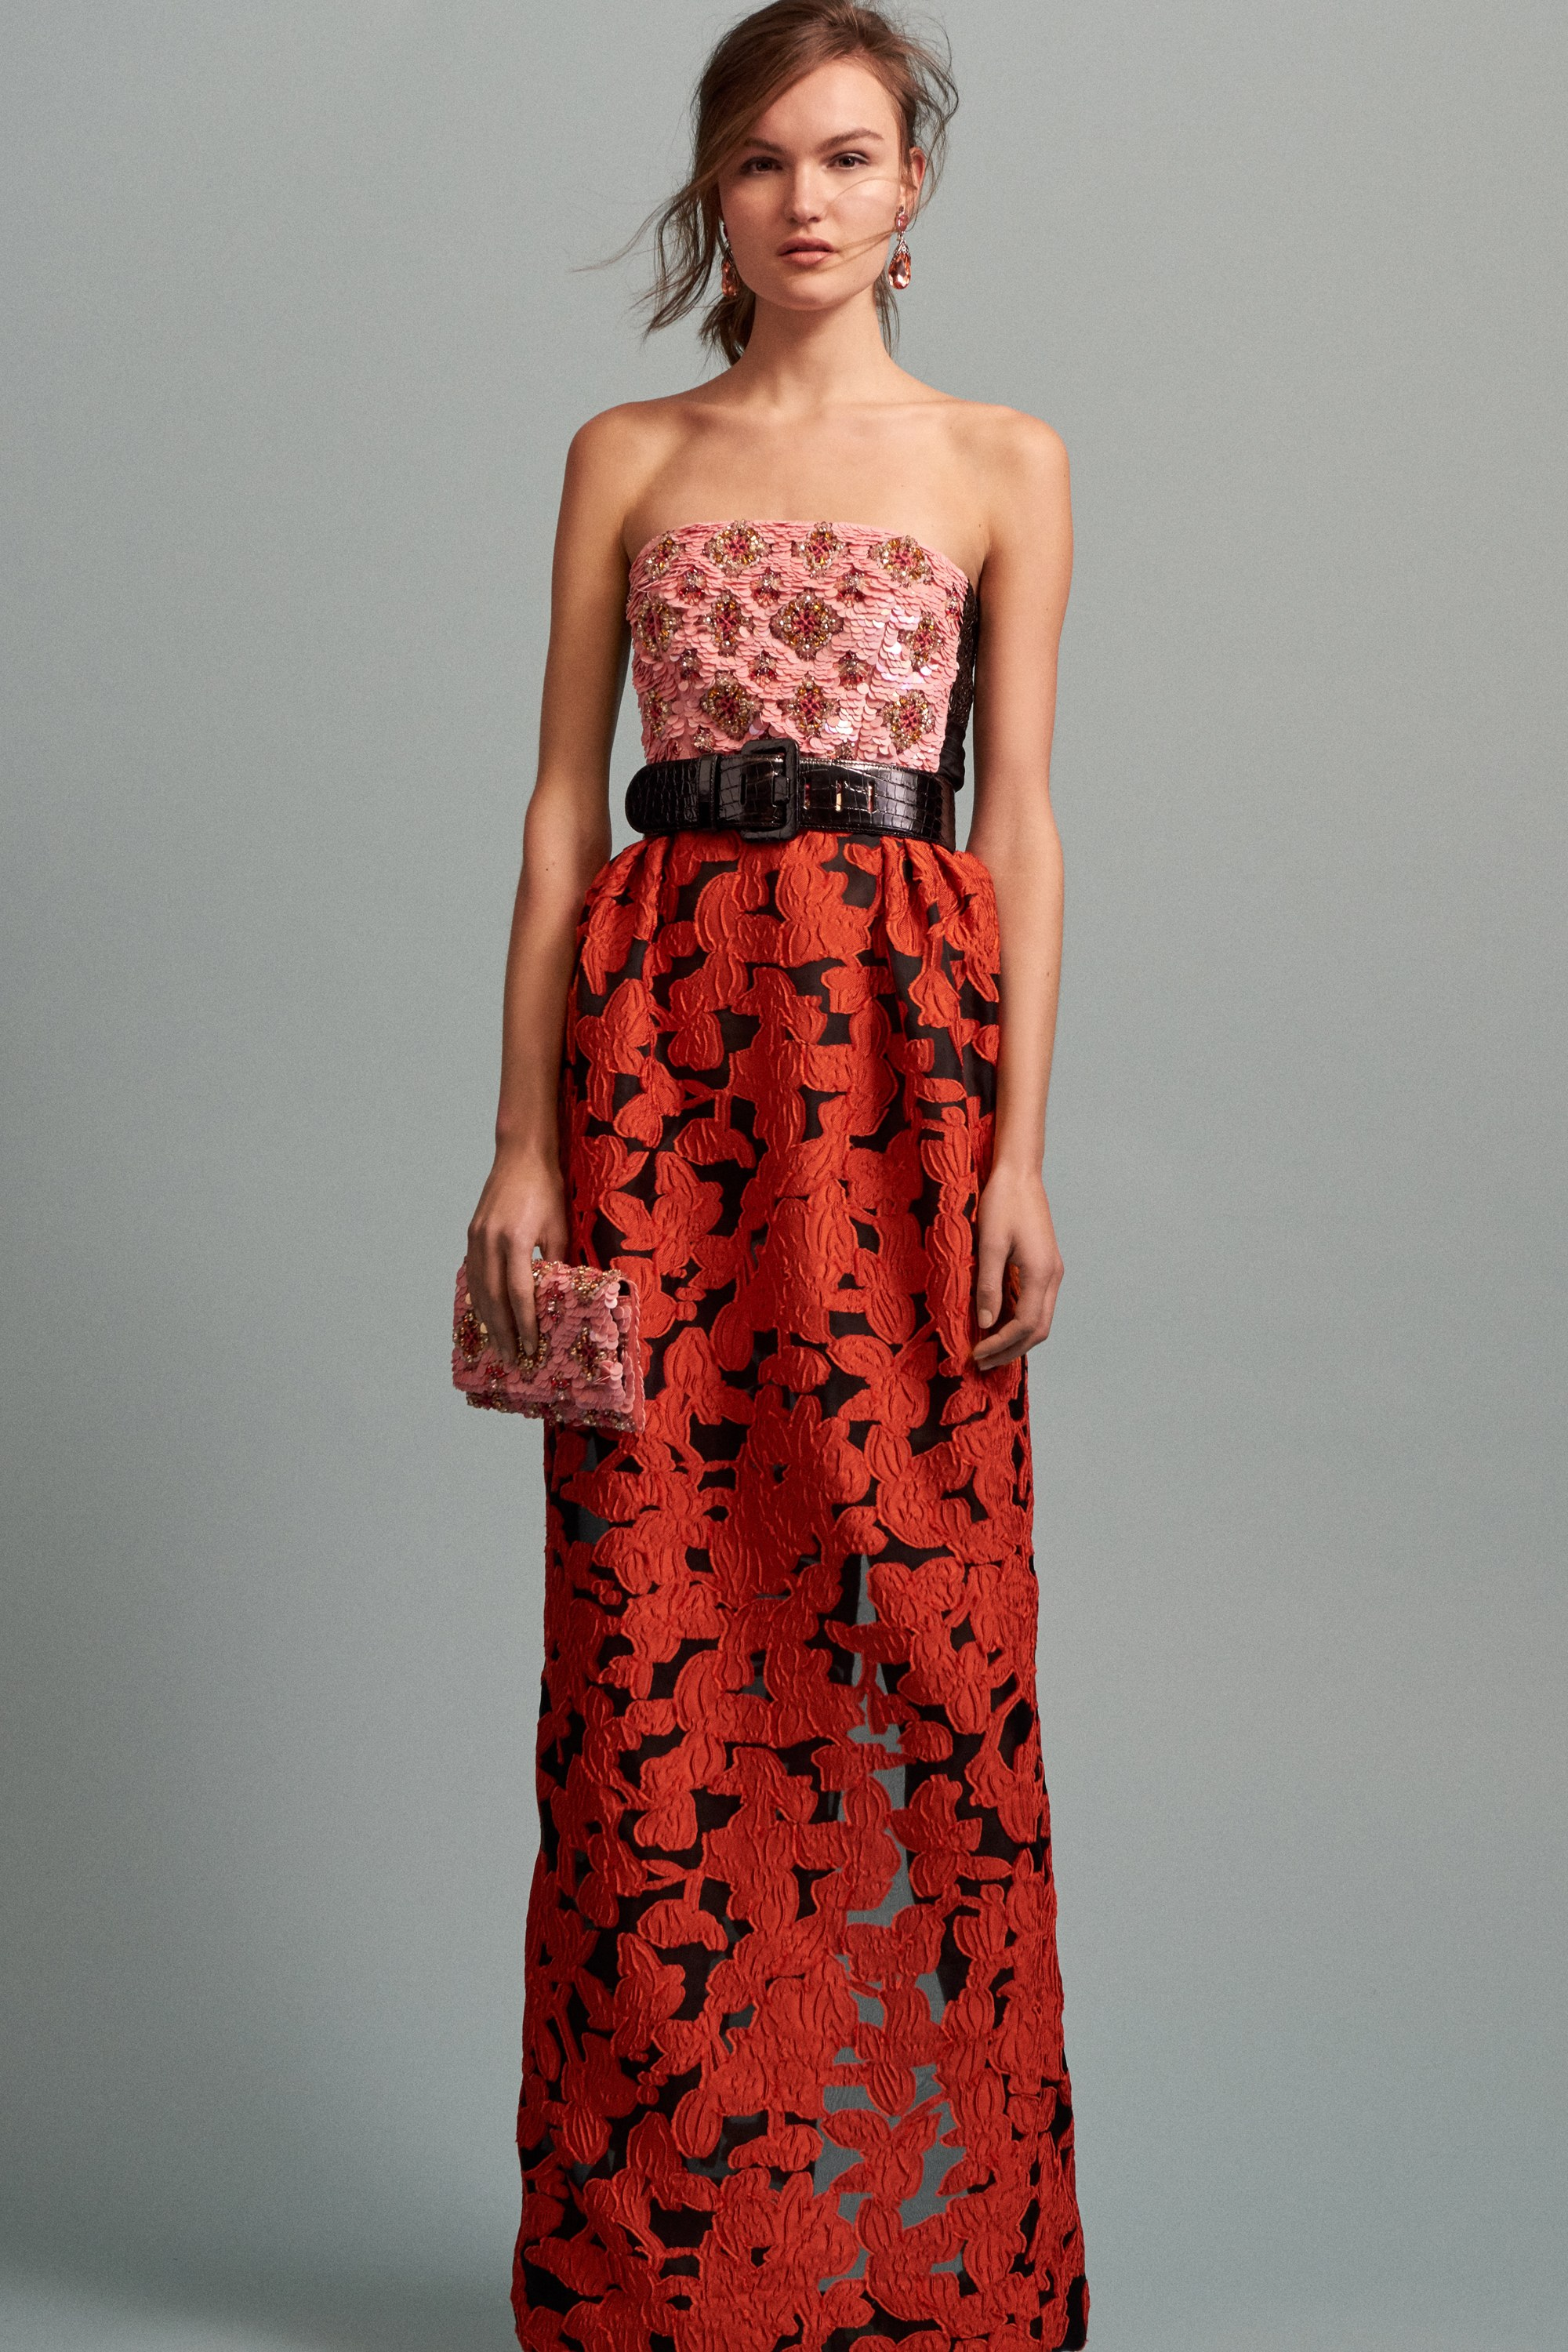 oscar-de-la-renta-pre-fall-2016-lookbook-32